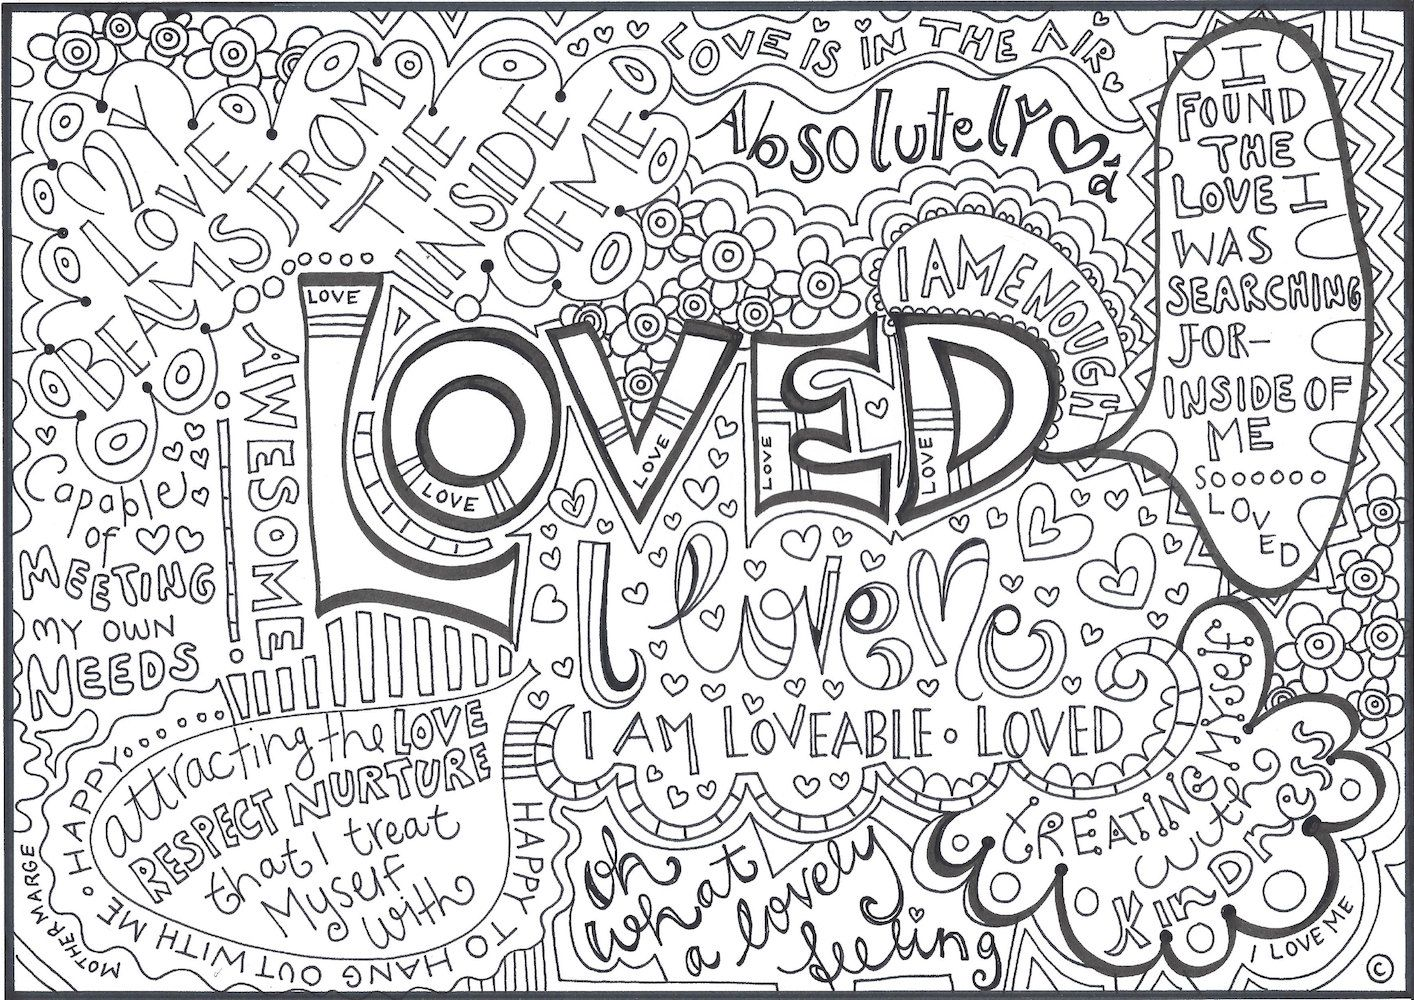 Coloring Pages For Recovery : Recovery quotes coloring pages for adults best